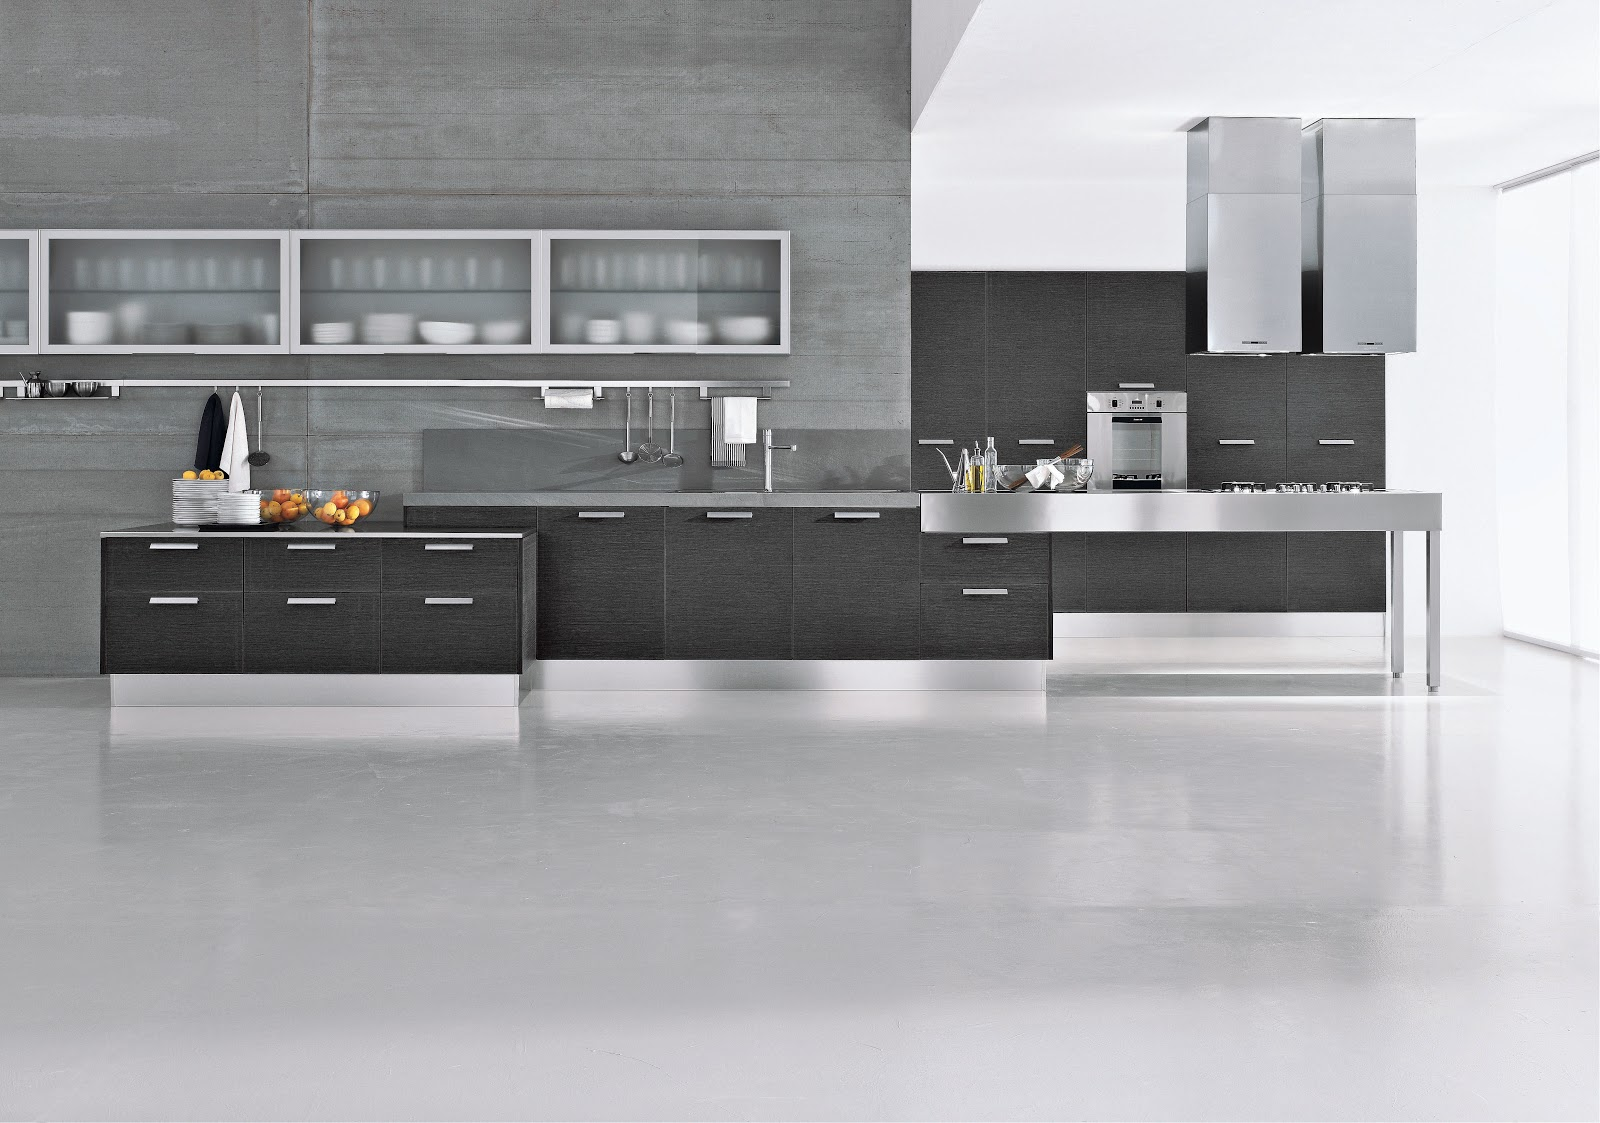 My-modern: Eco-friendly Kitchen Cabinets: Italian-style